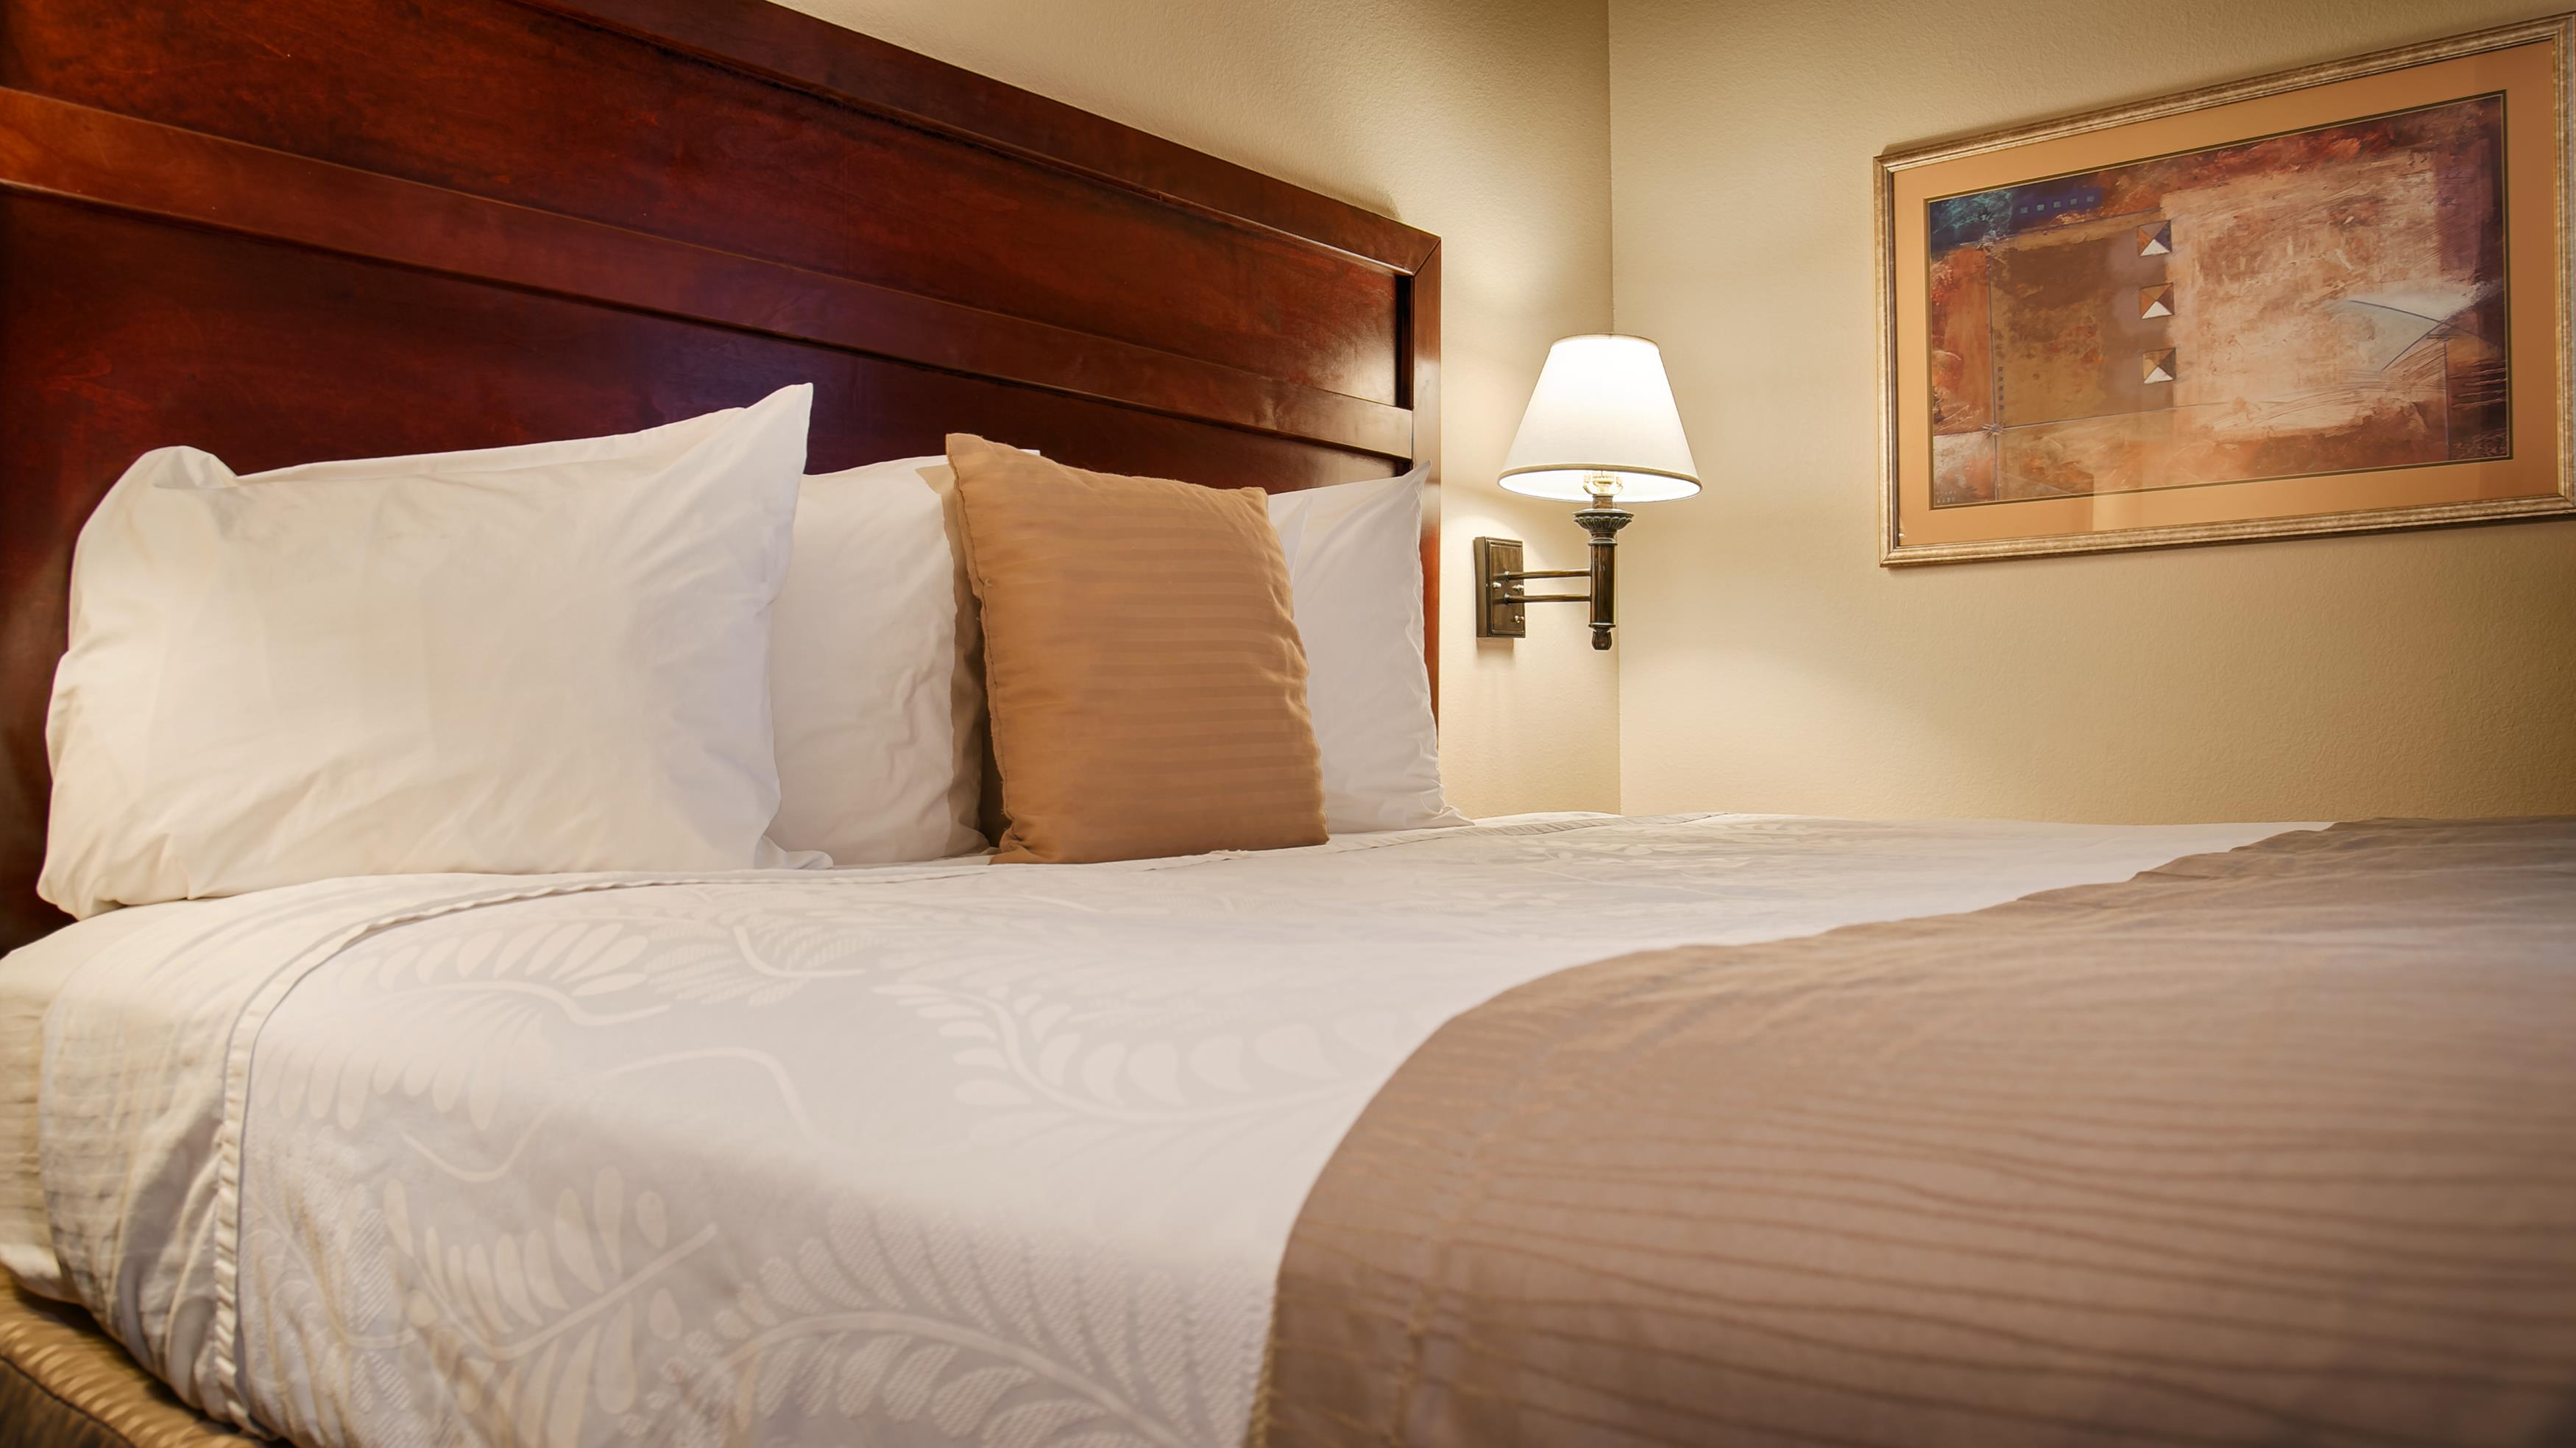 Country Inn & Suites by Radisson, Midway, FL image 2